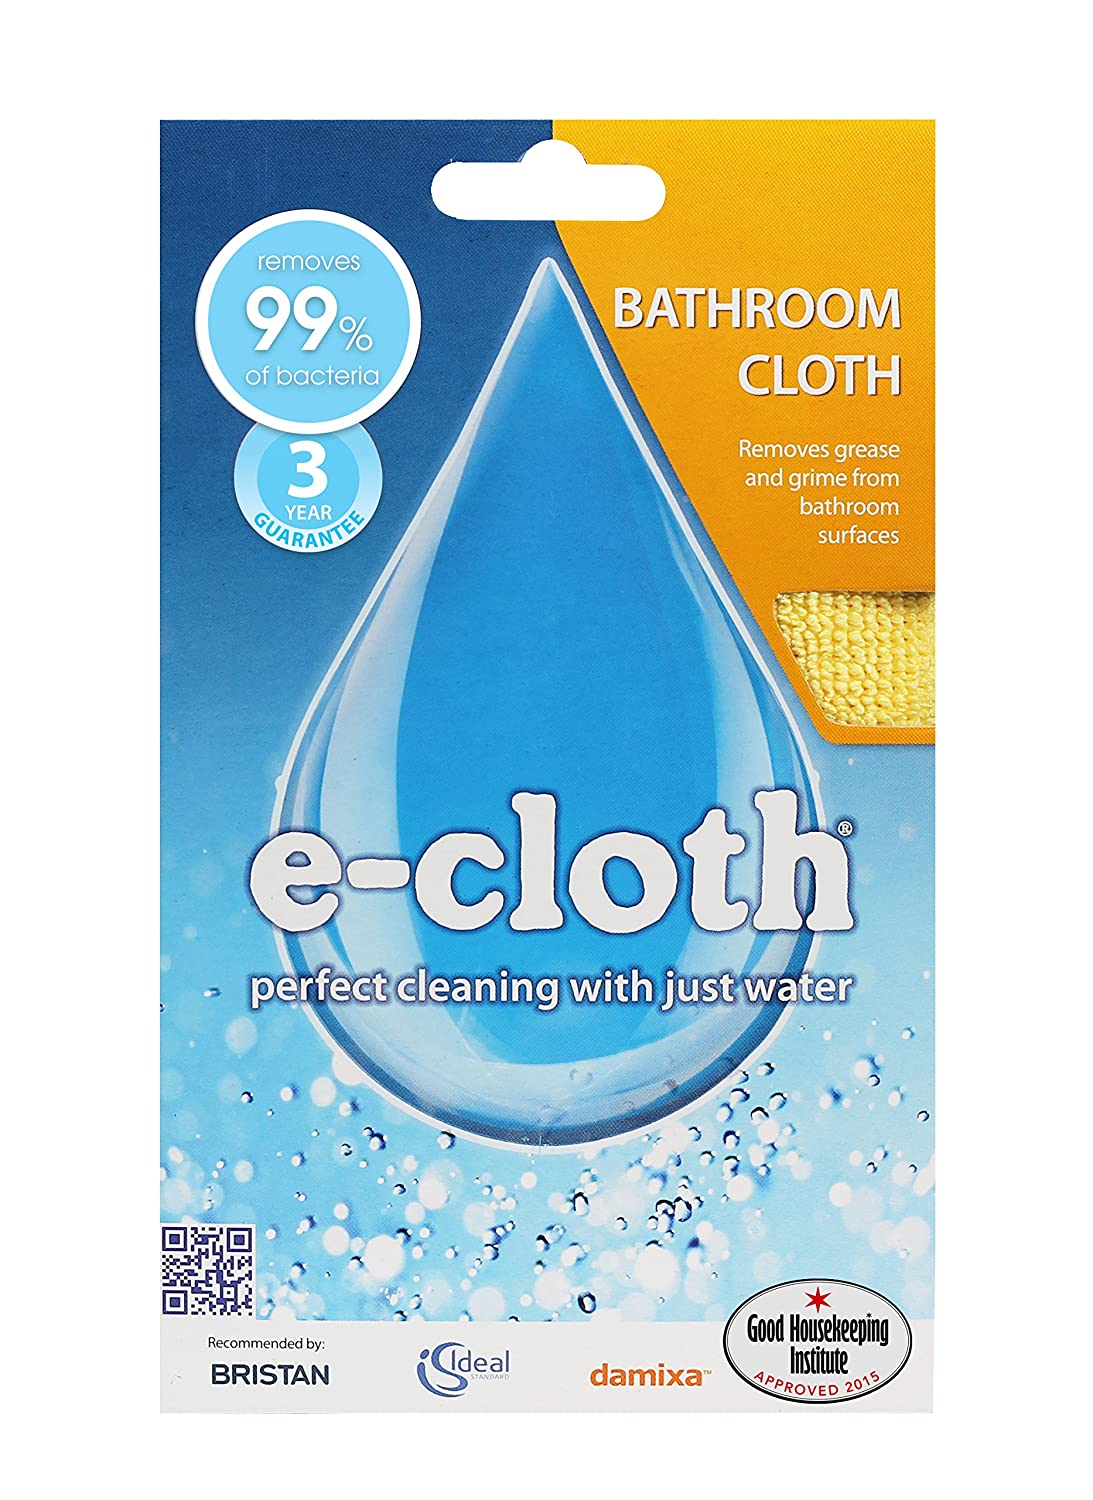 E-cloth BC Bathroom Cloth, Yellow EnviroProducts Ltd